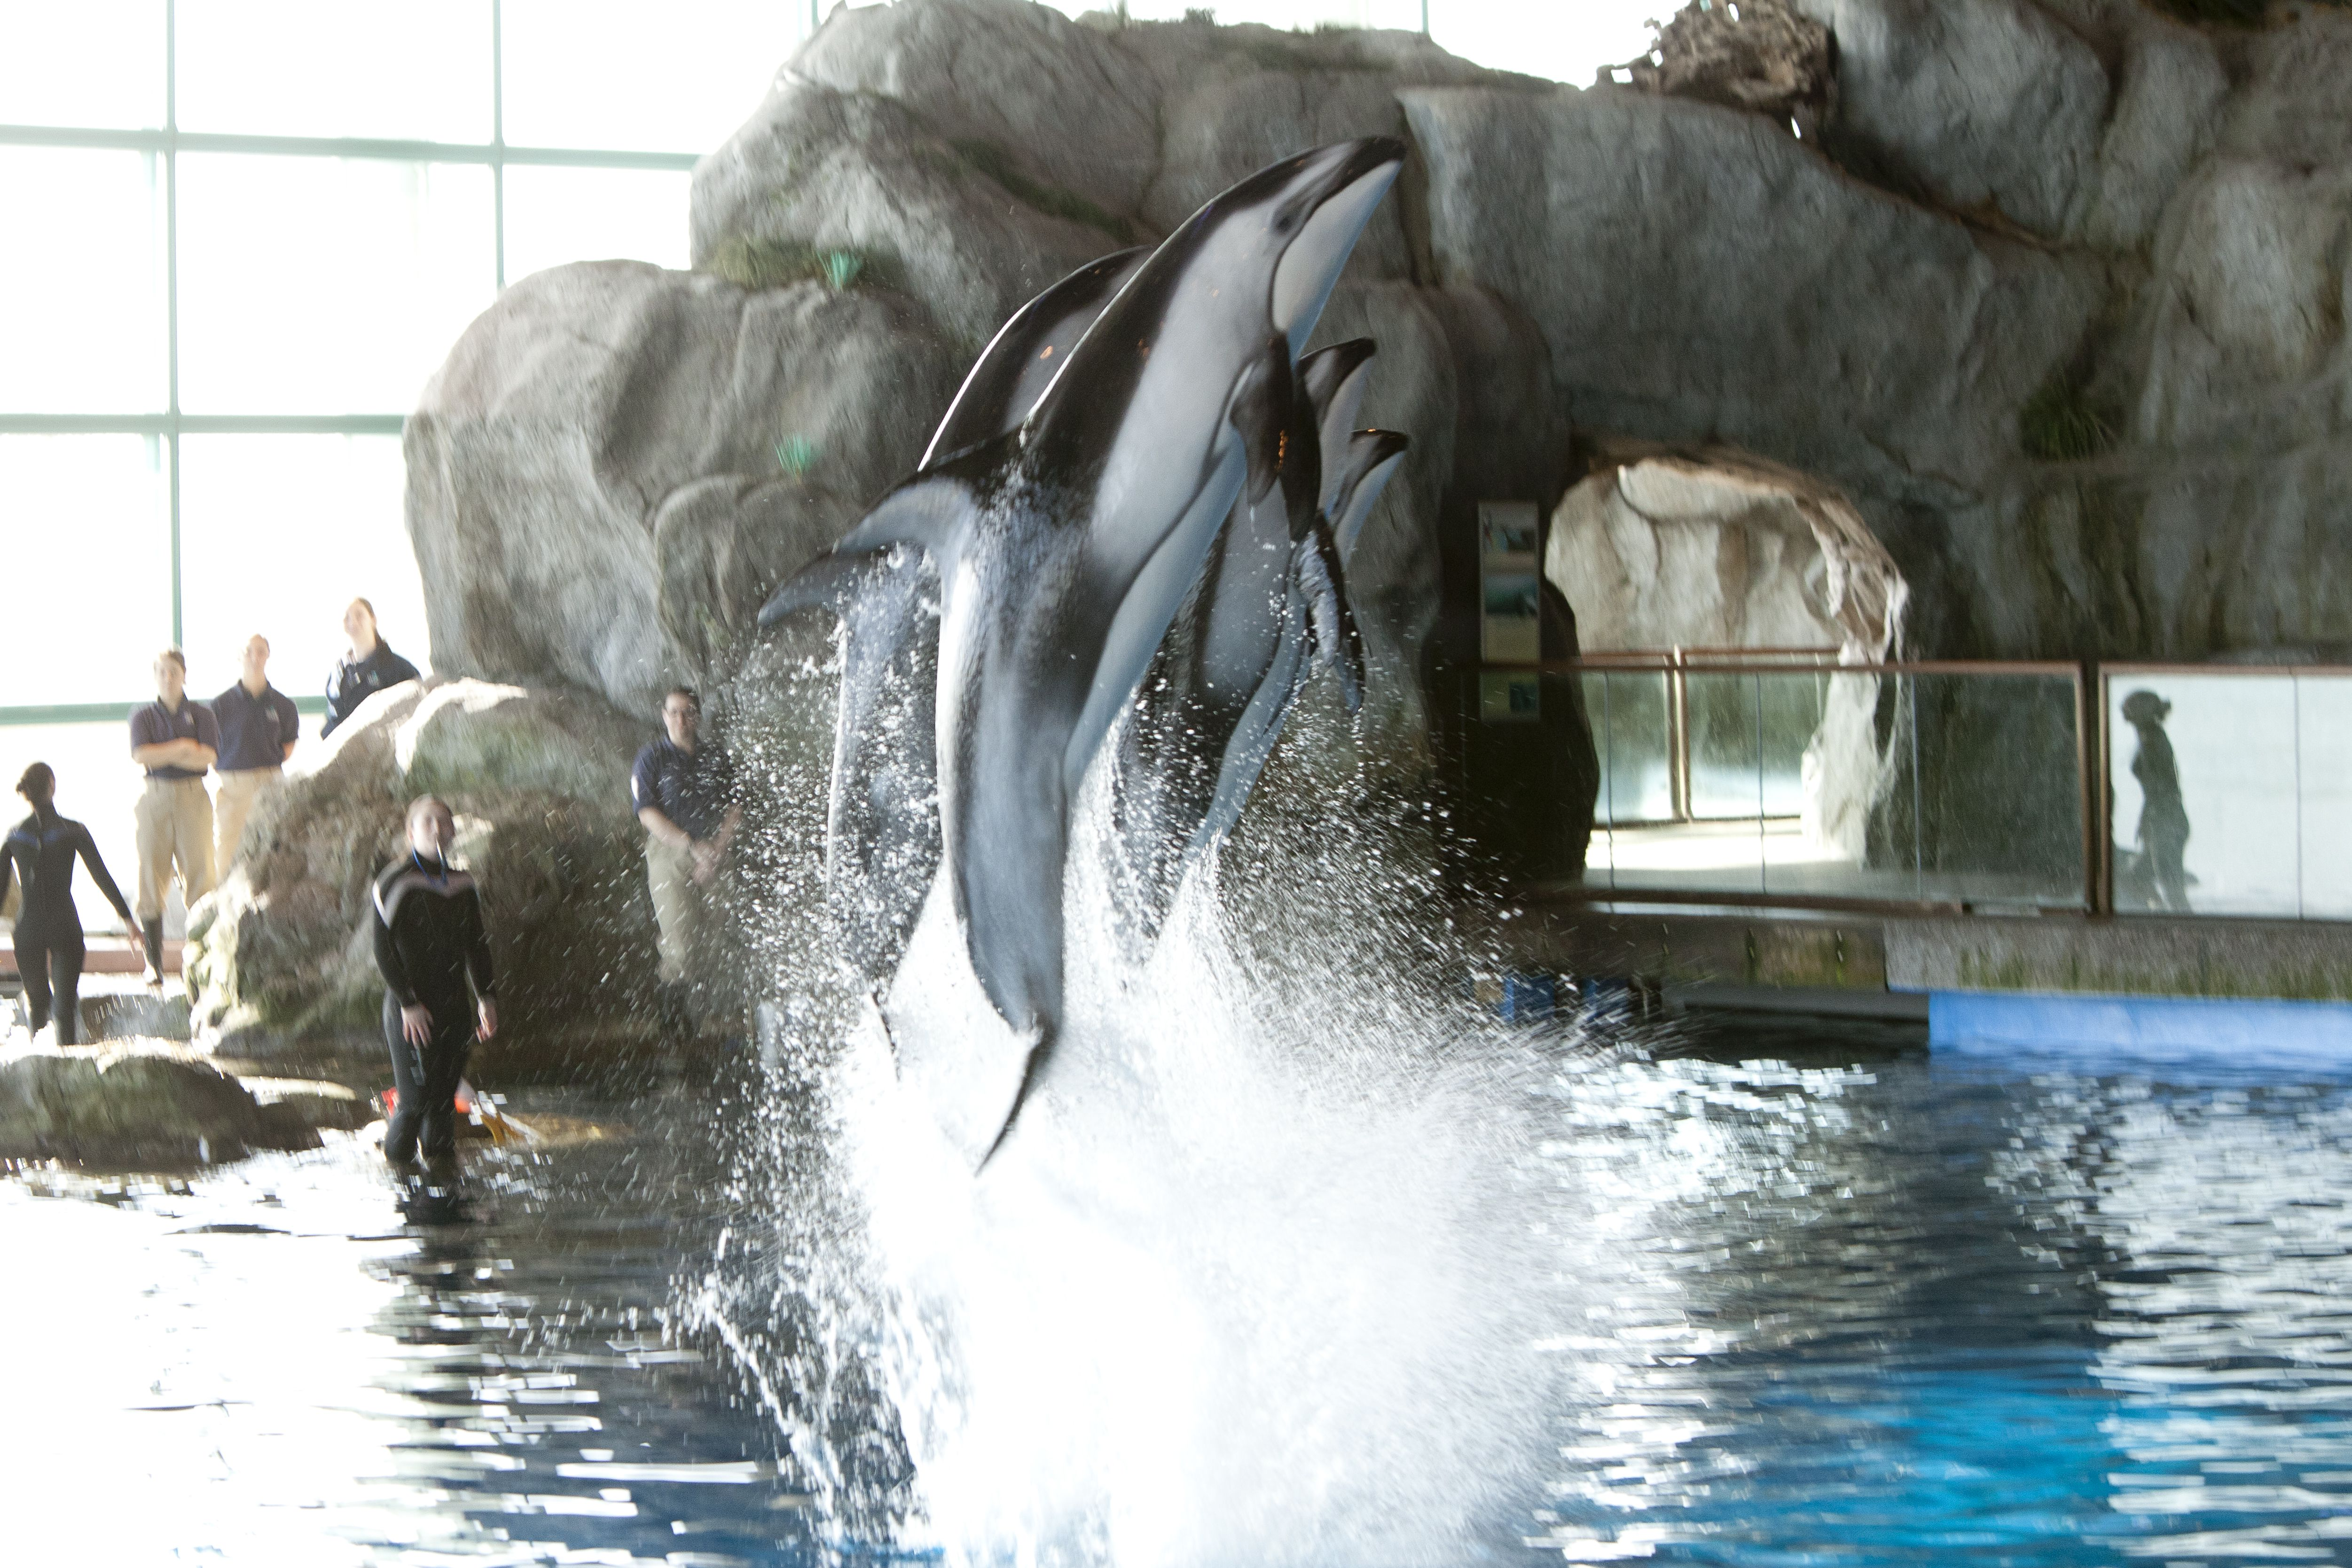 dolphins jumping out of the water